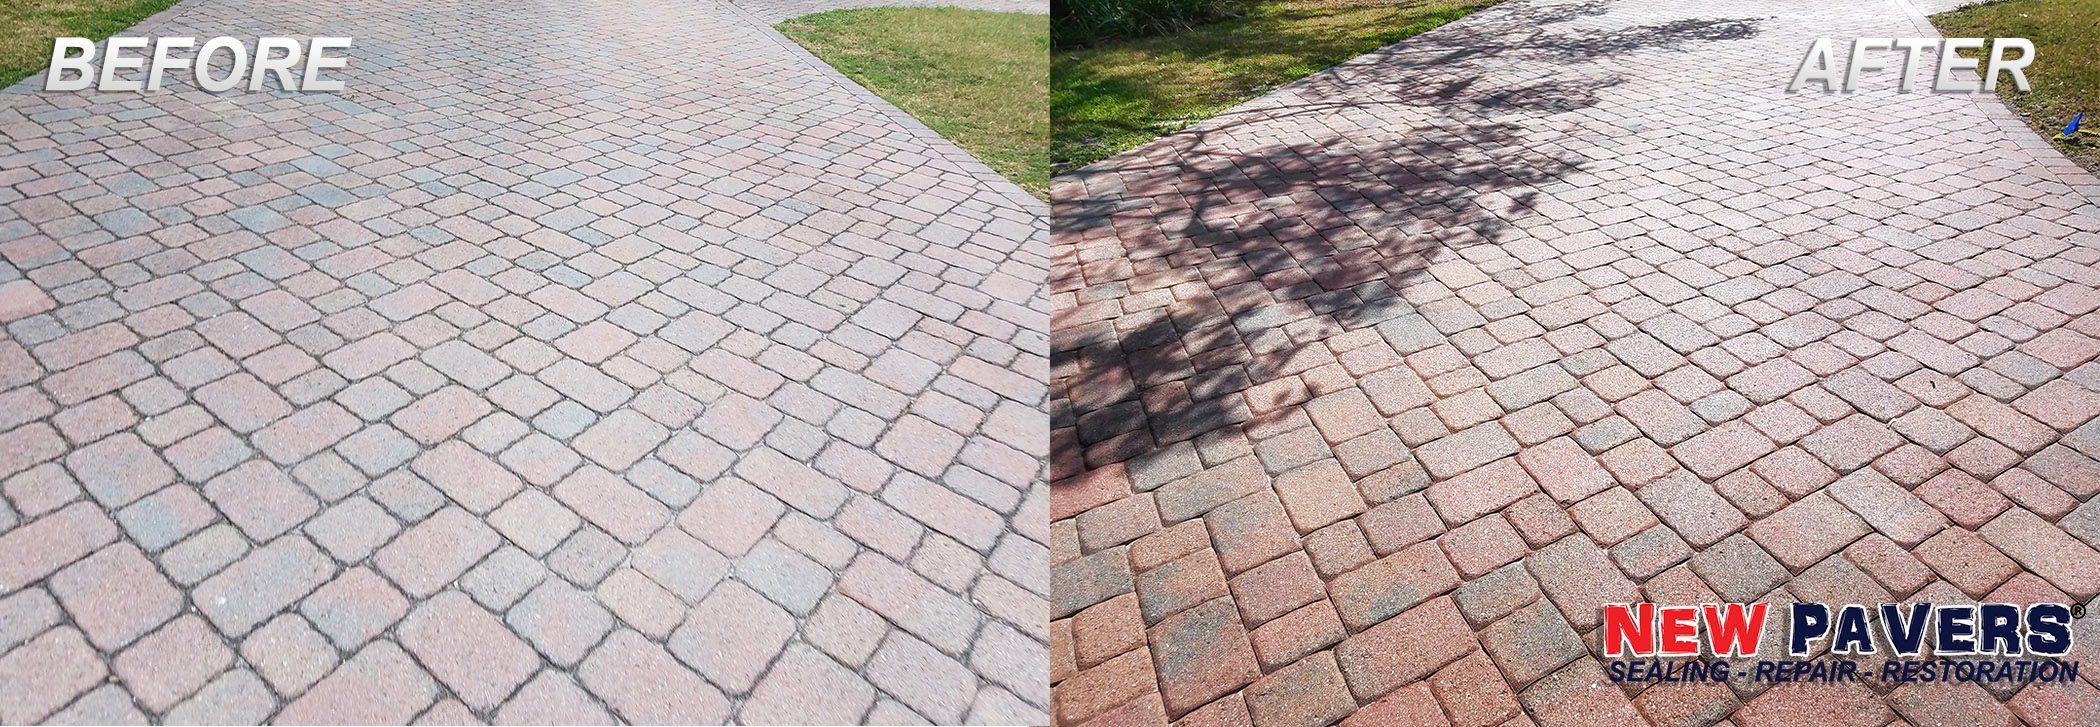 Before Amp After Paver Sealing Tampa Restoration